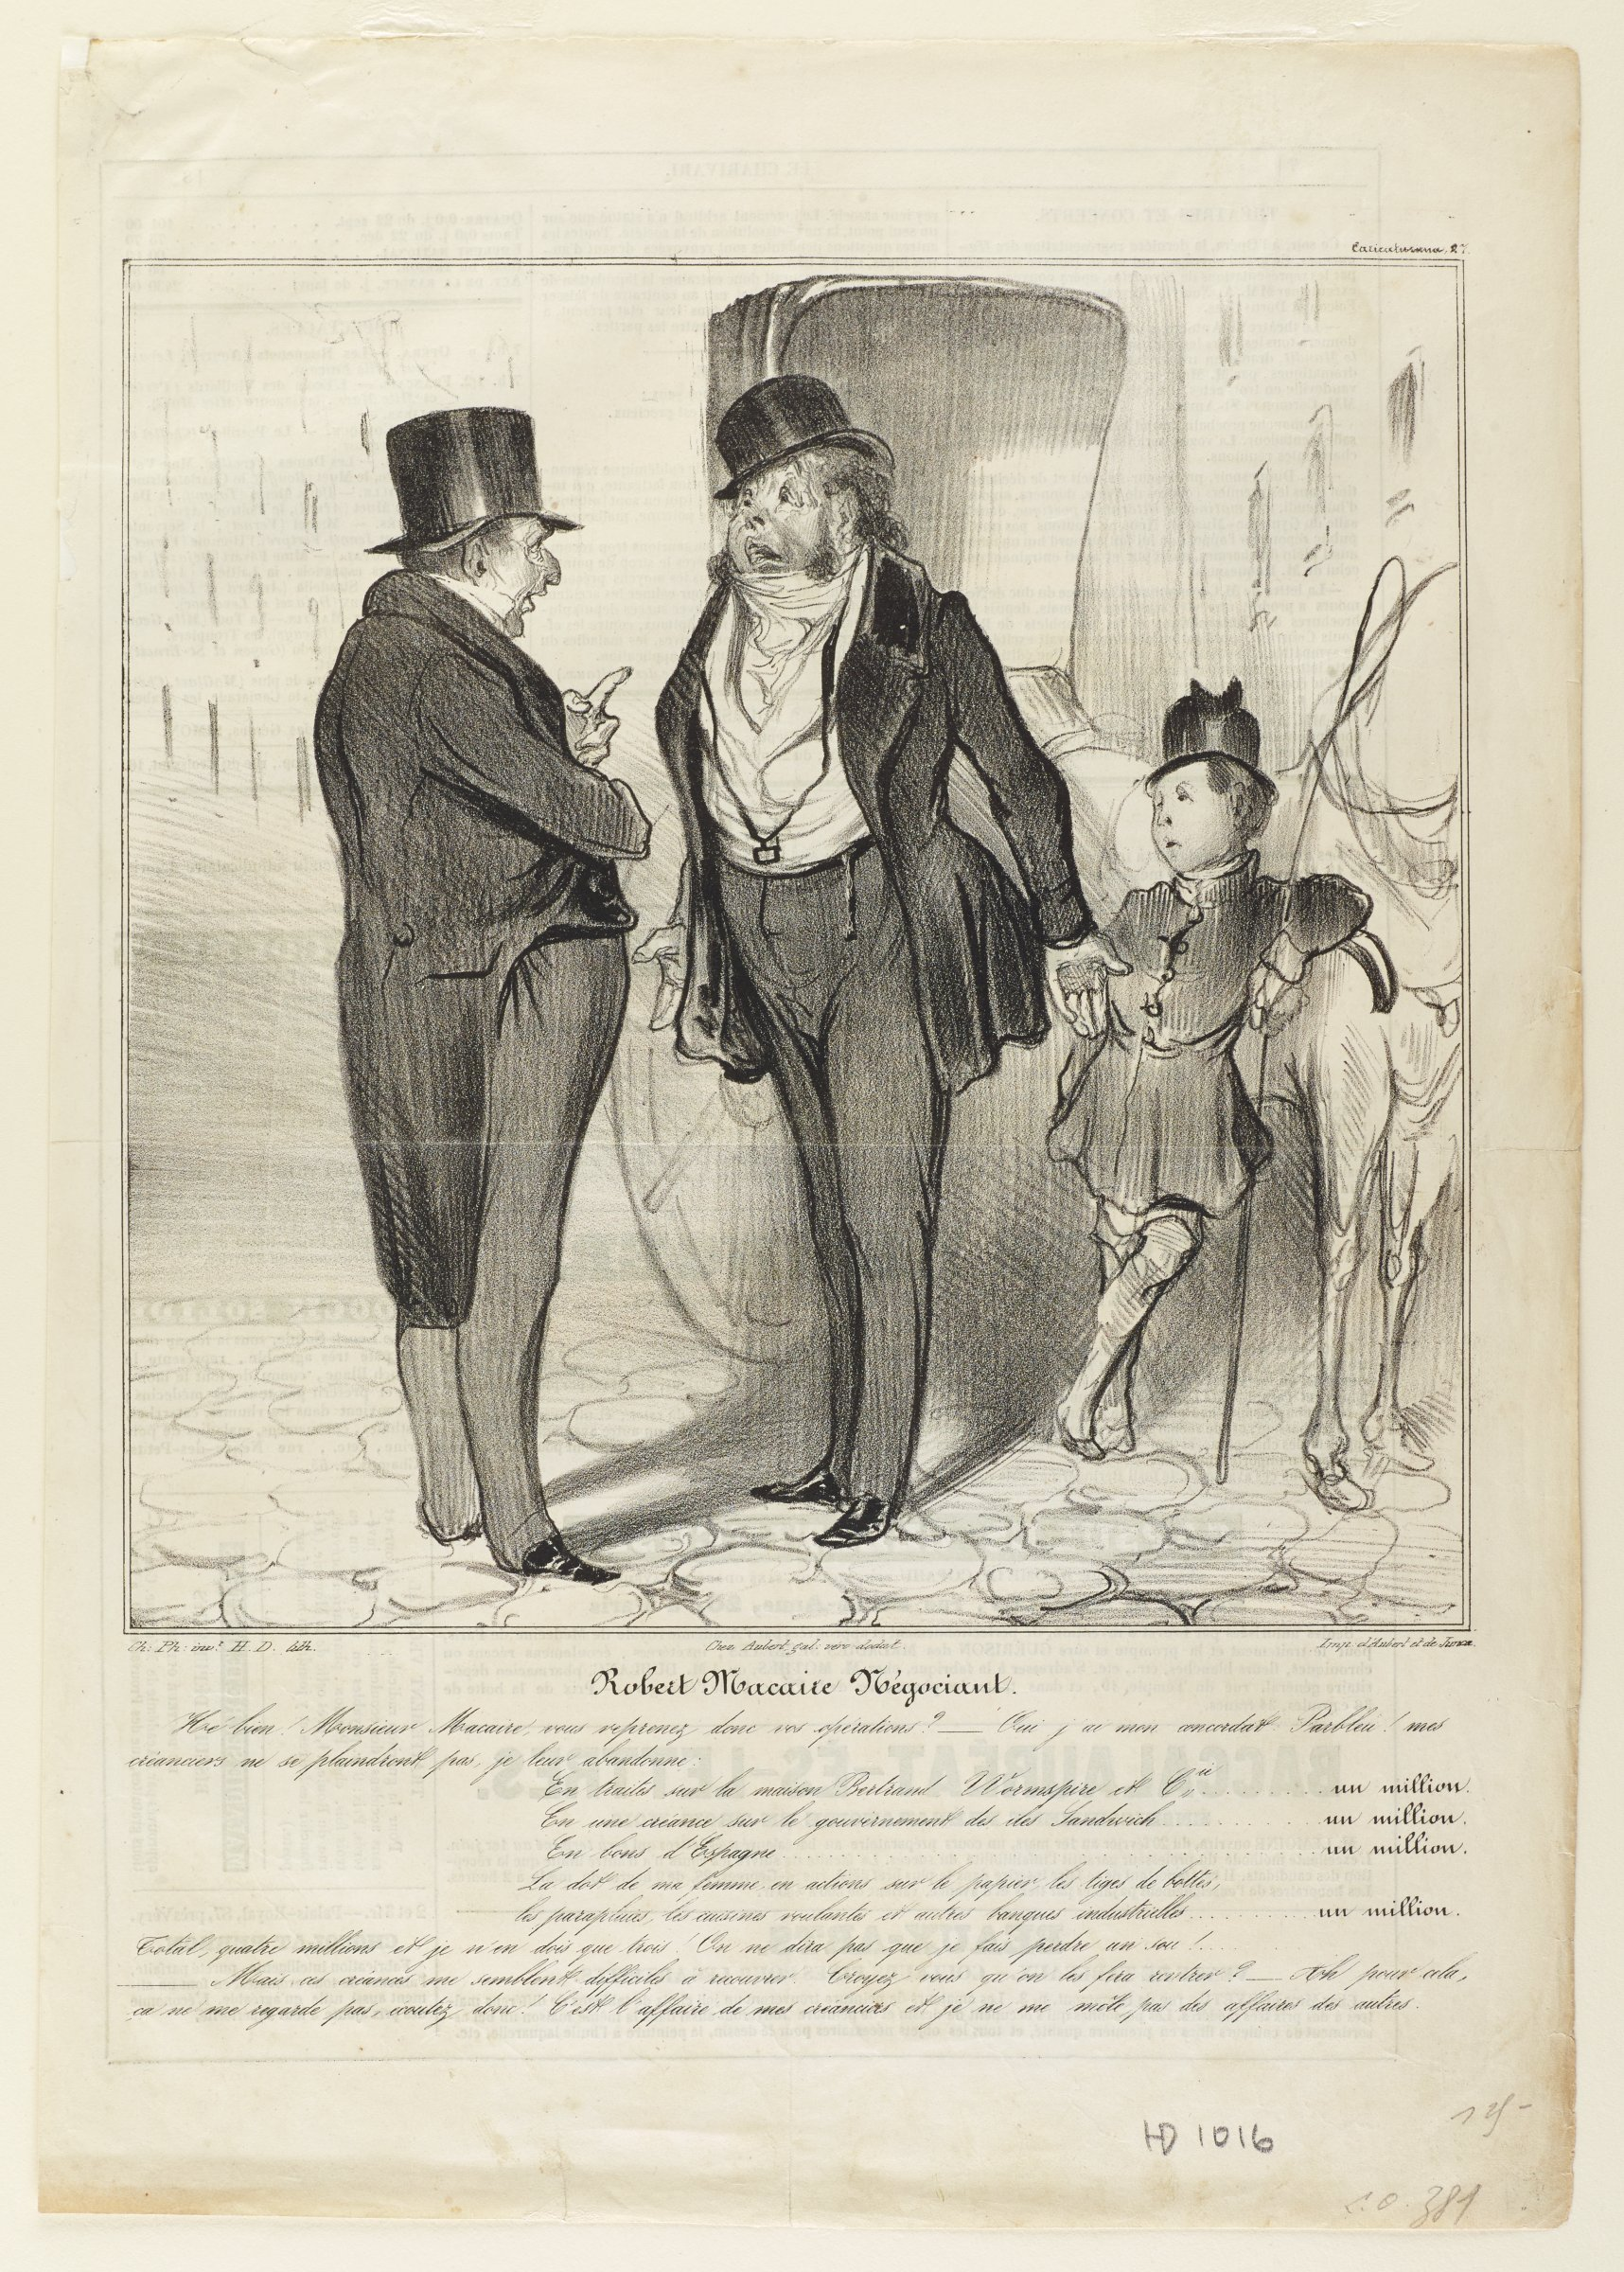 Two men in suits speak with one another. A young boy behind them leans on a horse and carriage.